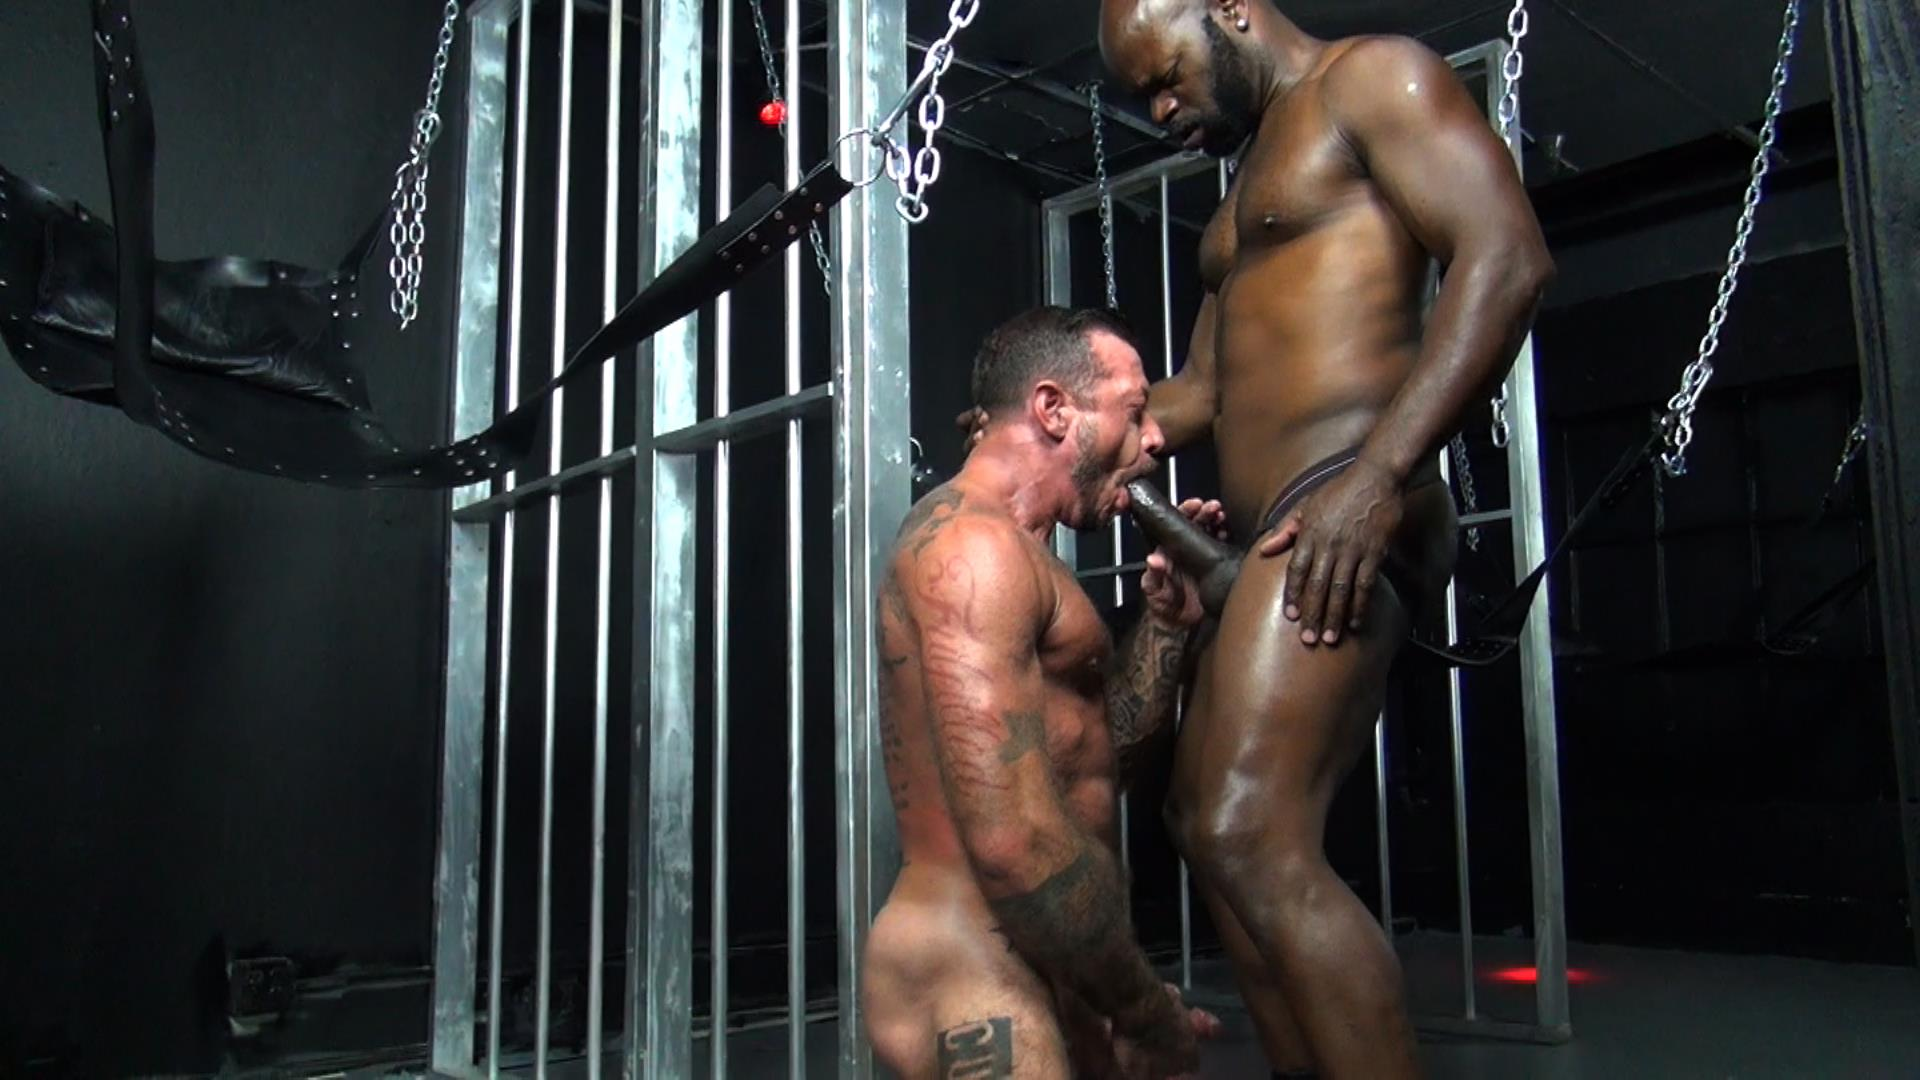 Raw-Fuck-Club-Cutler-X-and-Ray-Dalton-Interracial-Bareback-Sex-Amateur-Gay-Porn-4 Cutler X Barebacking Hairy Muscle Daddy Ray Dalton With His Big Black Cock